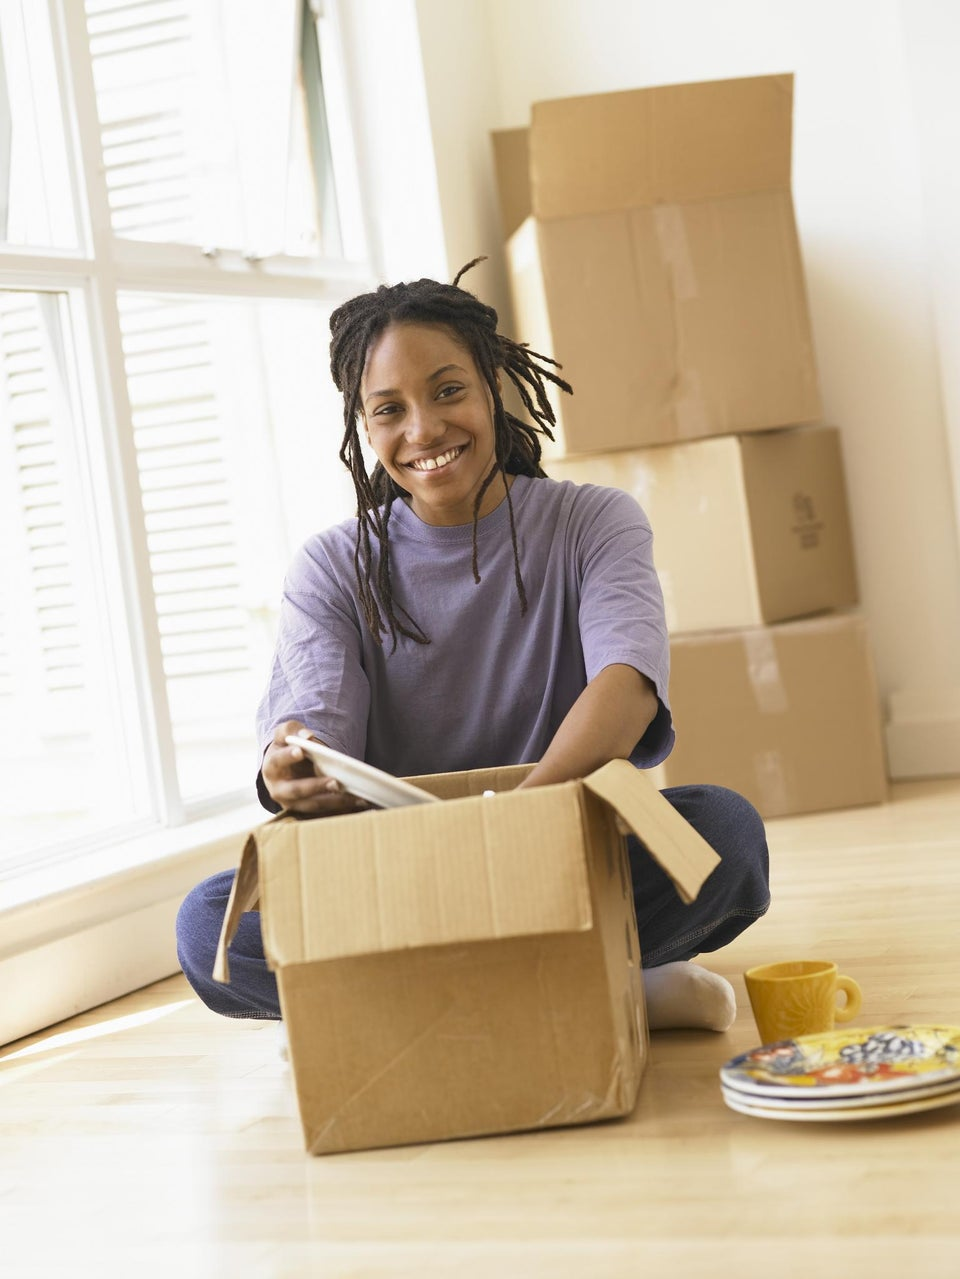 POLL: When Is It Appropriate to Move Out of Your Parents' Home?